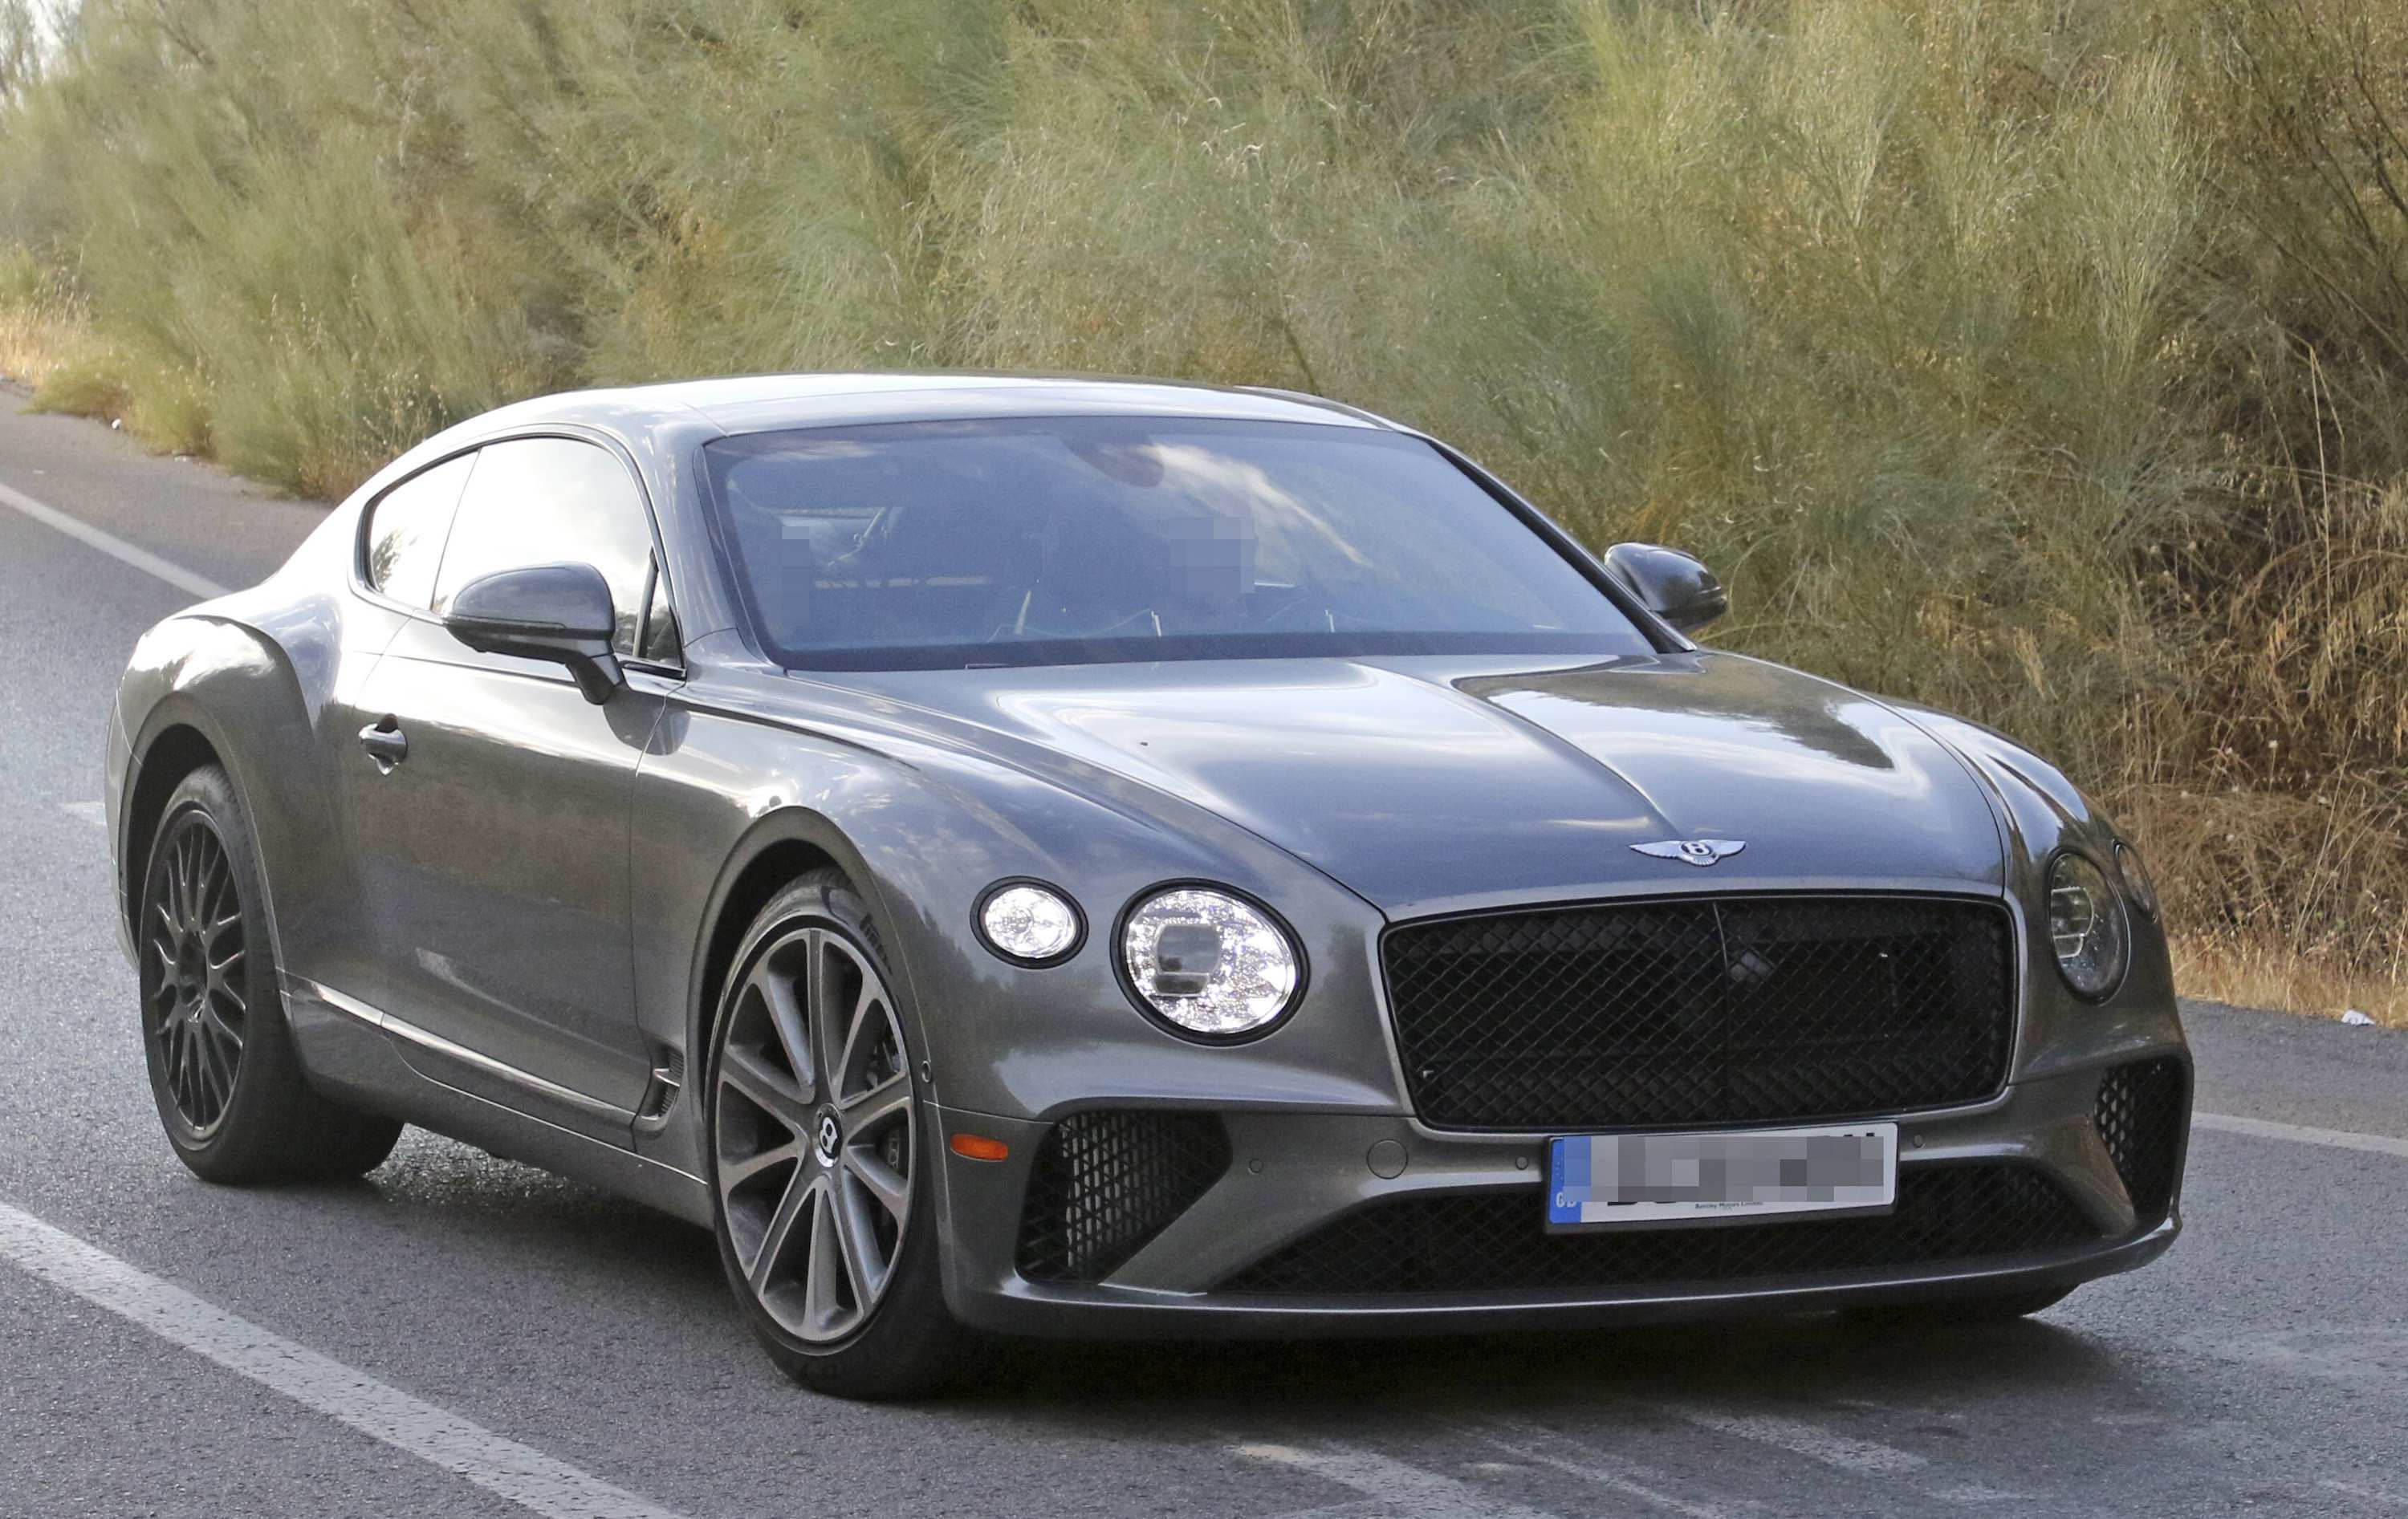 22 All New 2019 Bentley Continental Gt V8 Images